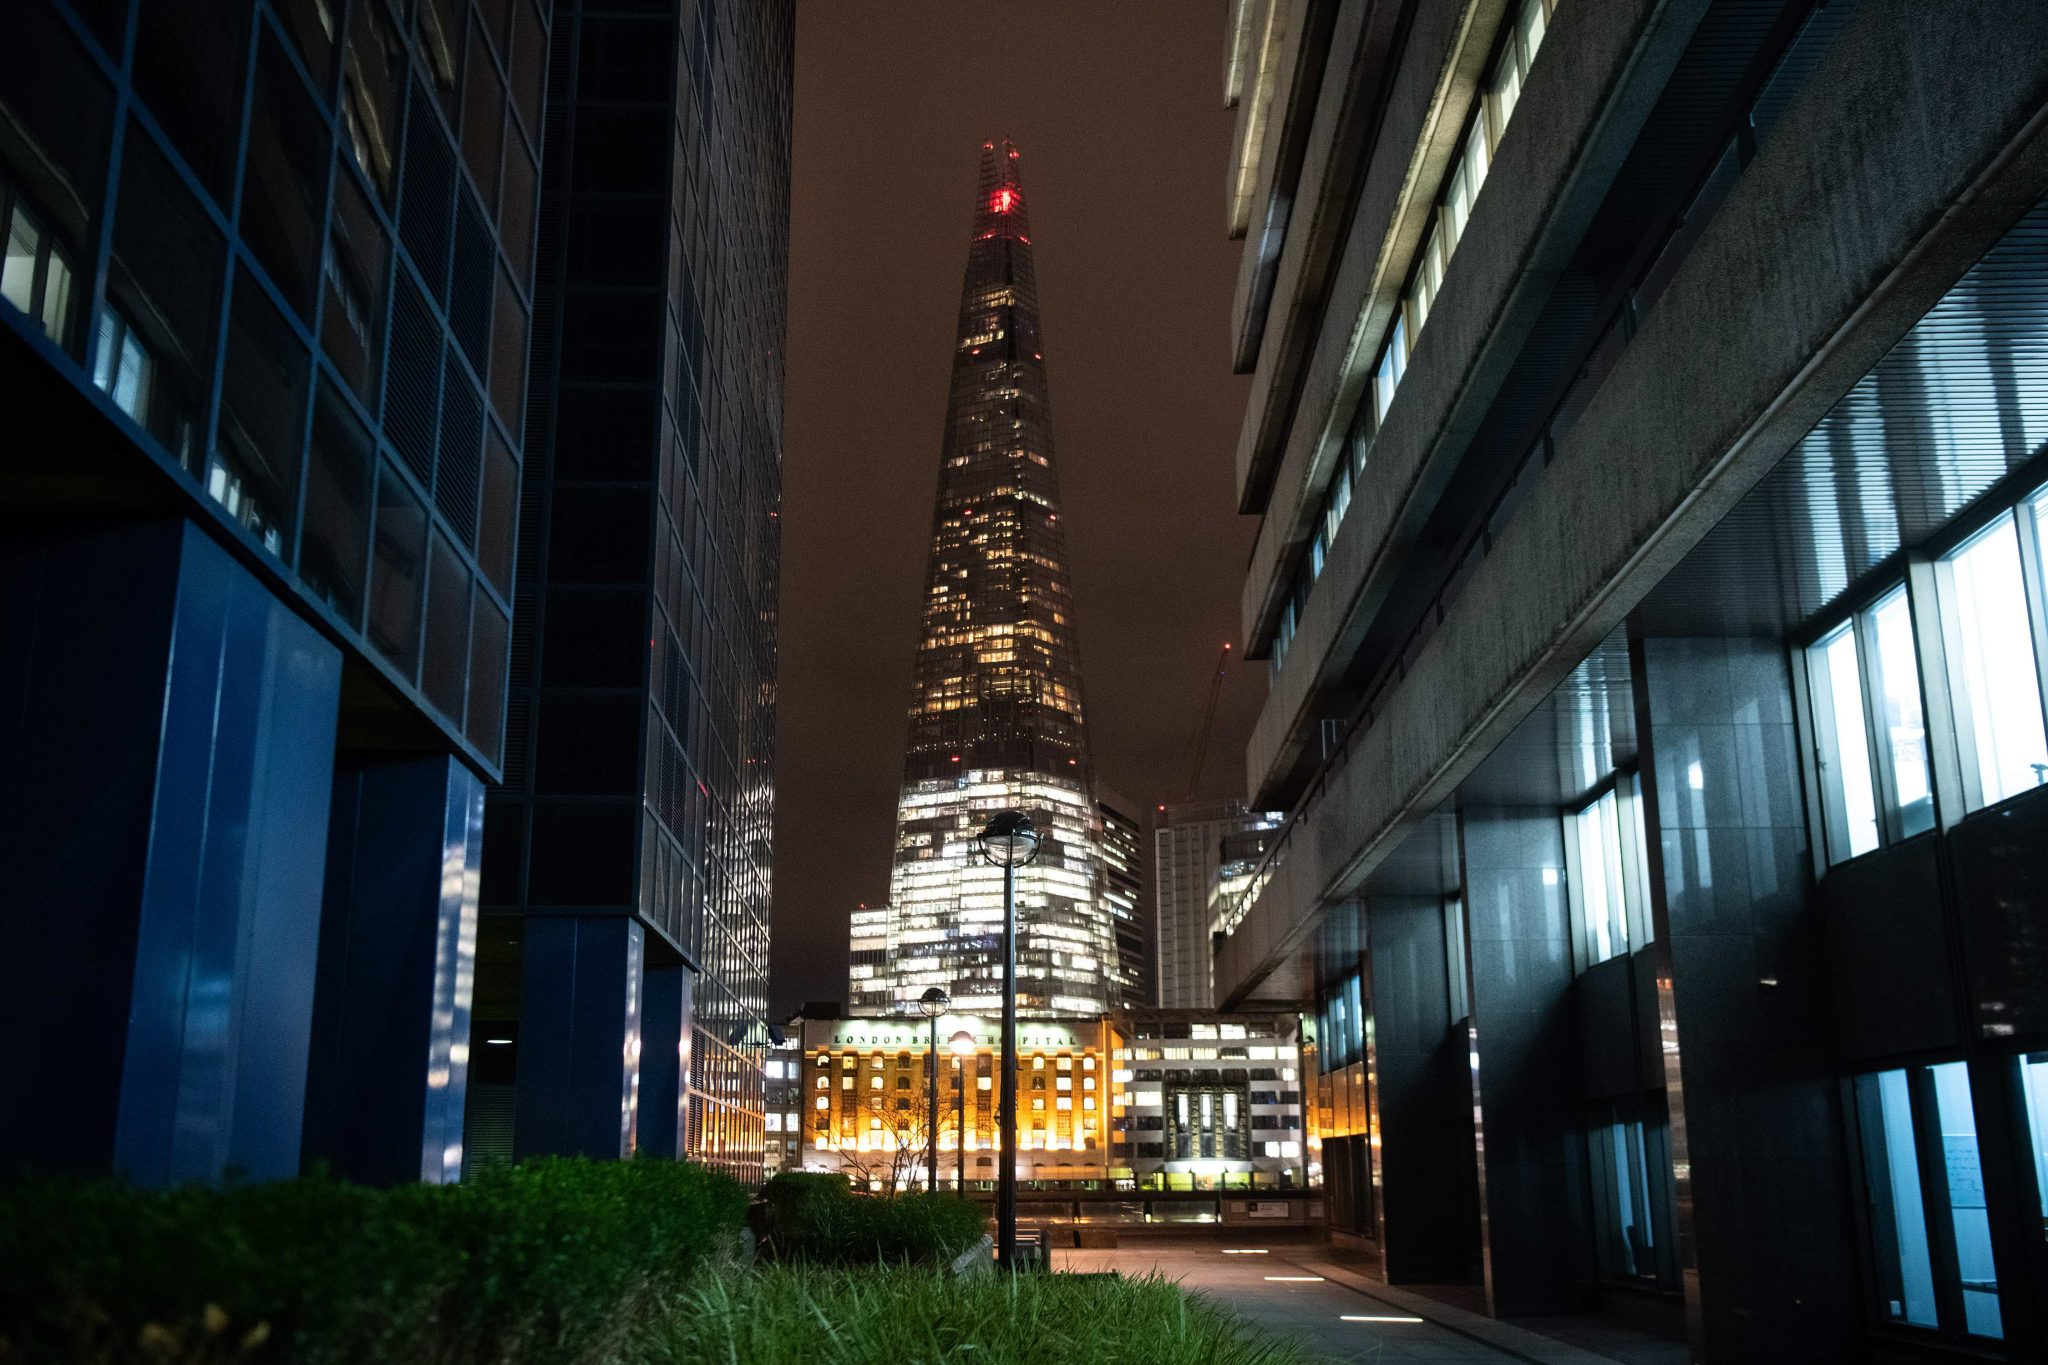 General views of the UK's tallest building The Shard during an astrophotography evening hosted by Google Pixel 4 at the Shard, London. PA Photo. Picture date: Wednesday November 6, 2019. The Shard turned off its lights so guests at the event could get a clear view of the night sky to take pictures using the phone. The Google Pixel 4 launched last month with the new enhanced Night Sight mode, which can capture photos of the Milky Way in just one tap. Photo credit should read: Matt Crossick/PA Wire